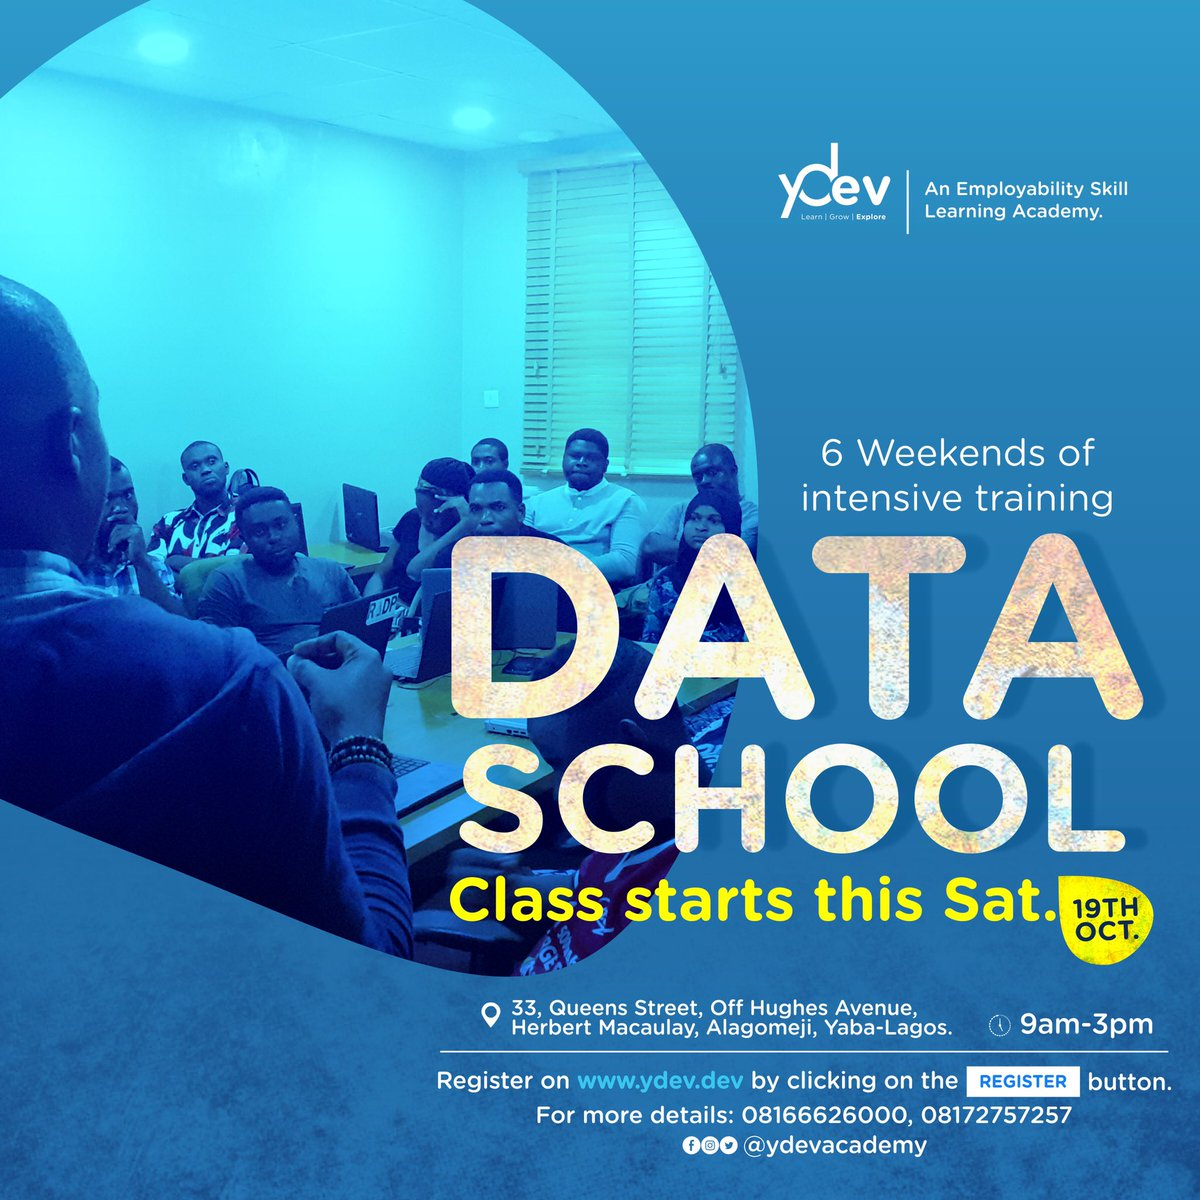 It starts today! Transition into a career with guaranteed in-demand job opportunities. Learn 21st skills needed to scale up in your current career. Sign up now #ydevacademy #dataschool #datascience <br>http://pic.twitter.com/6QKbgfw6DJ